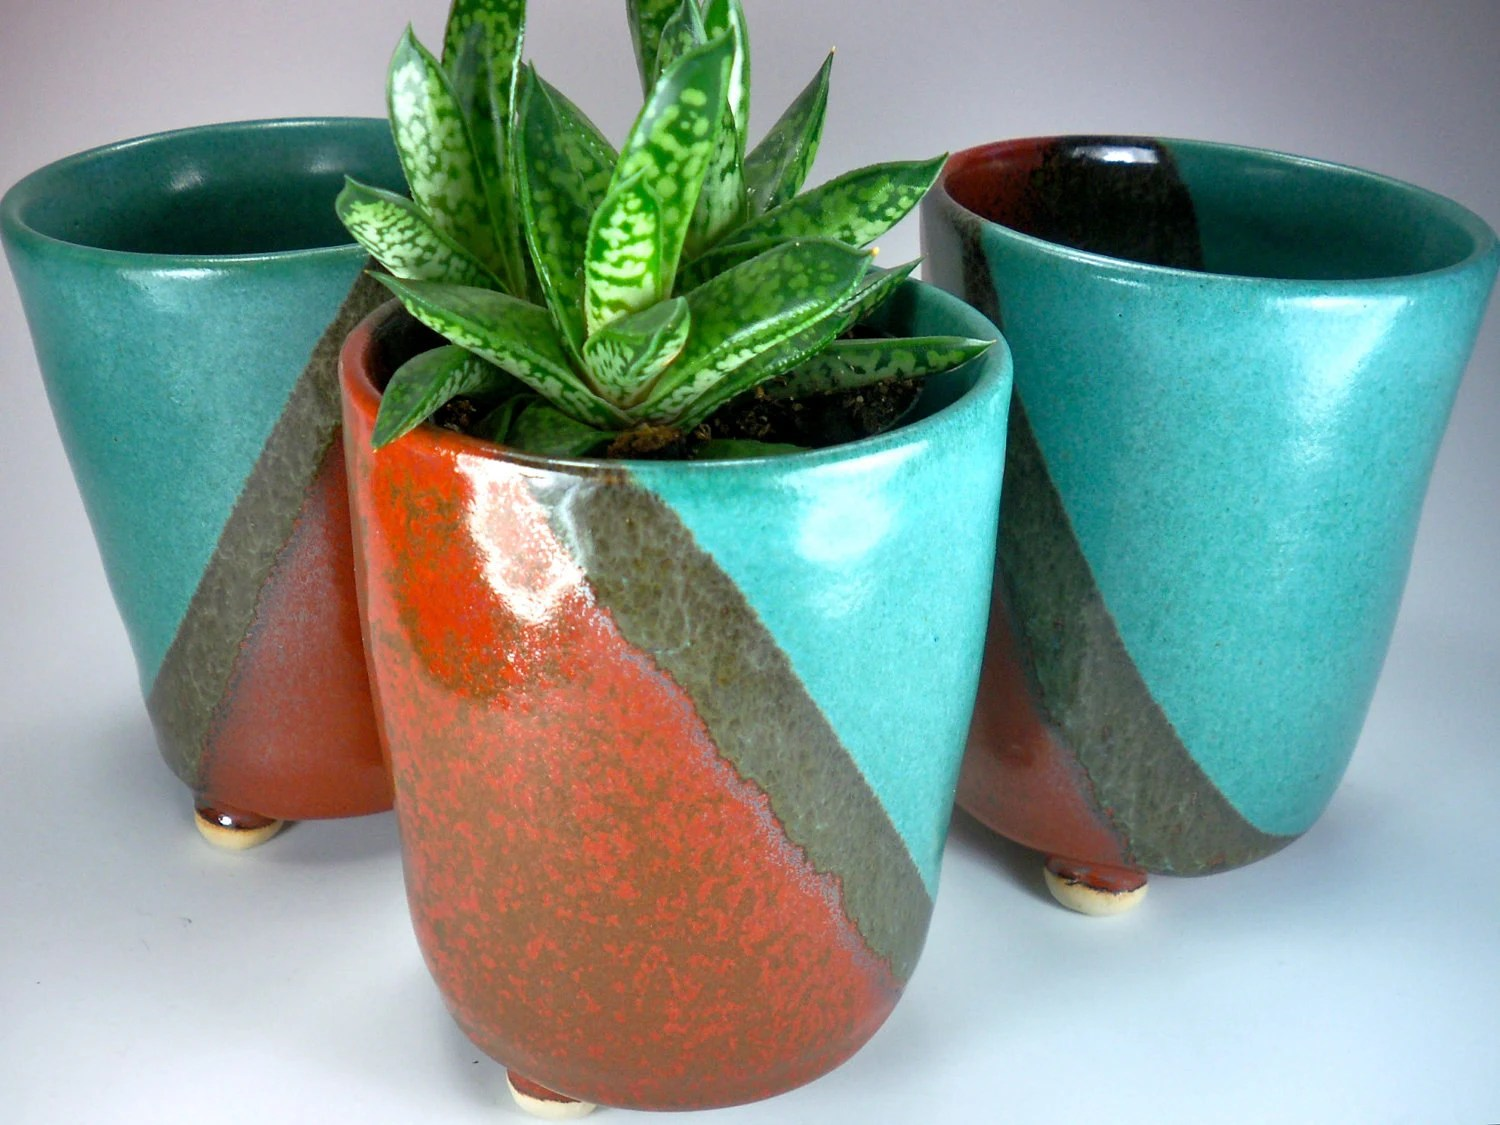 SALE, Ceramic Planter,  Tall Flower Pot, Handmade Stoneware Pottery in Orange Turquoise Moss Green - JulieKnowlesPottery